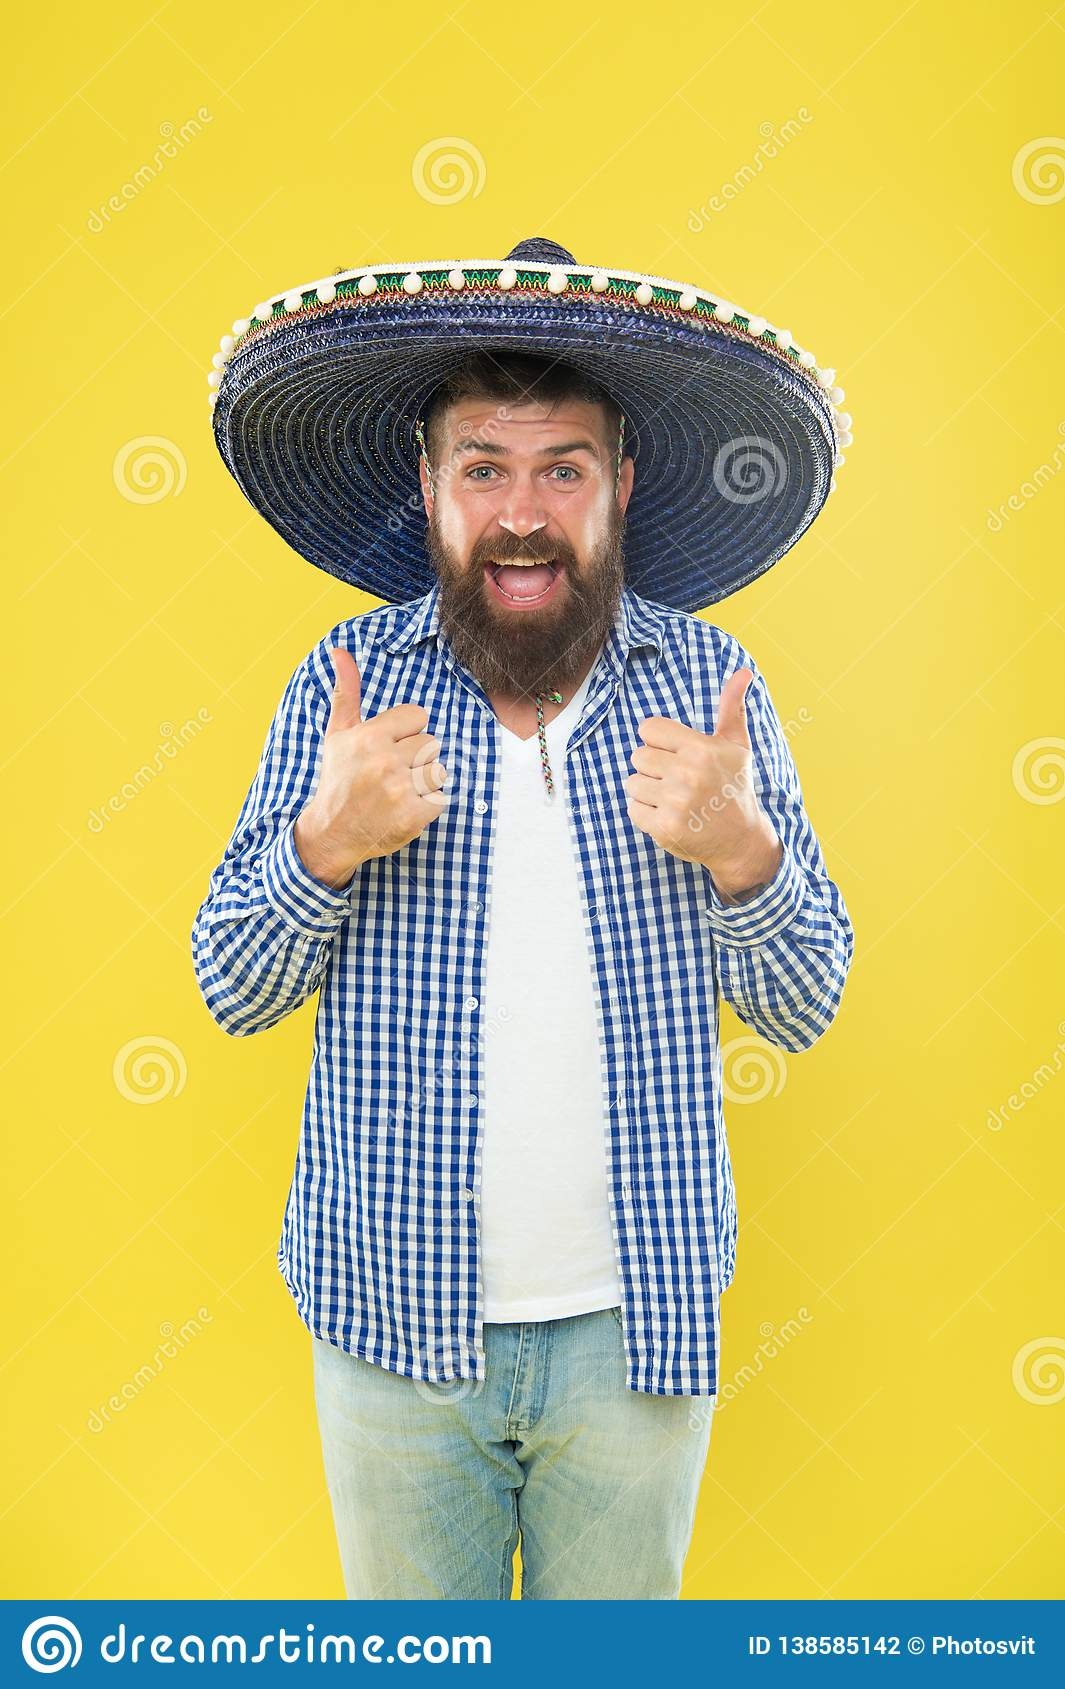 He is in love with mexican style. Mexican man wearing sombrero. Bearded man in mexican hat. Hipster in wide brim hat